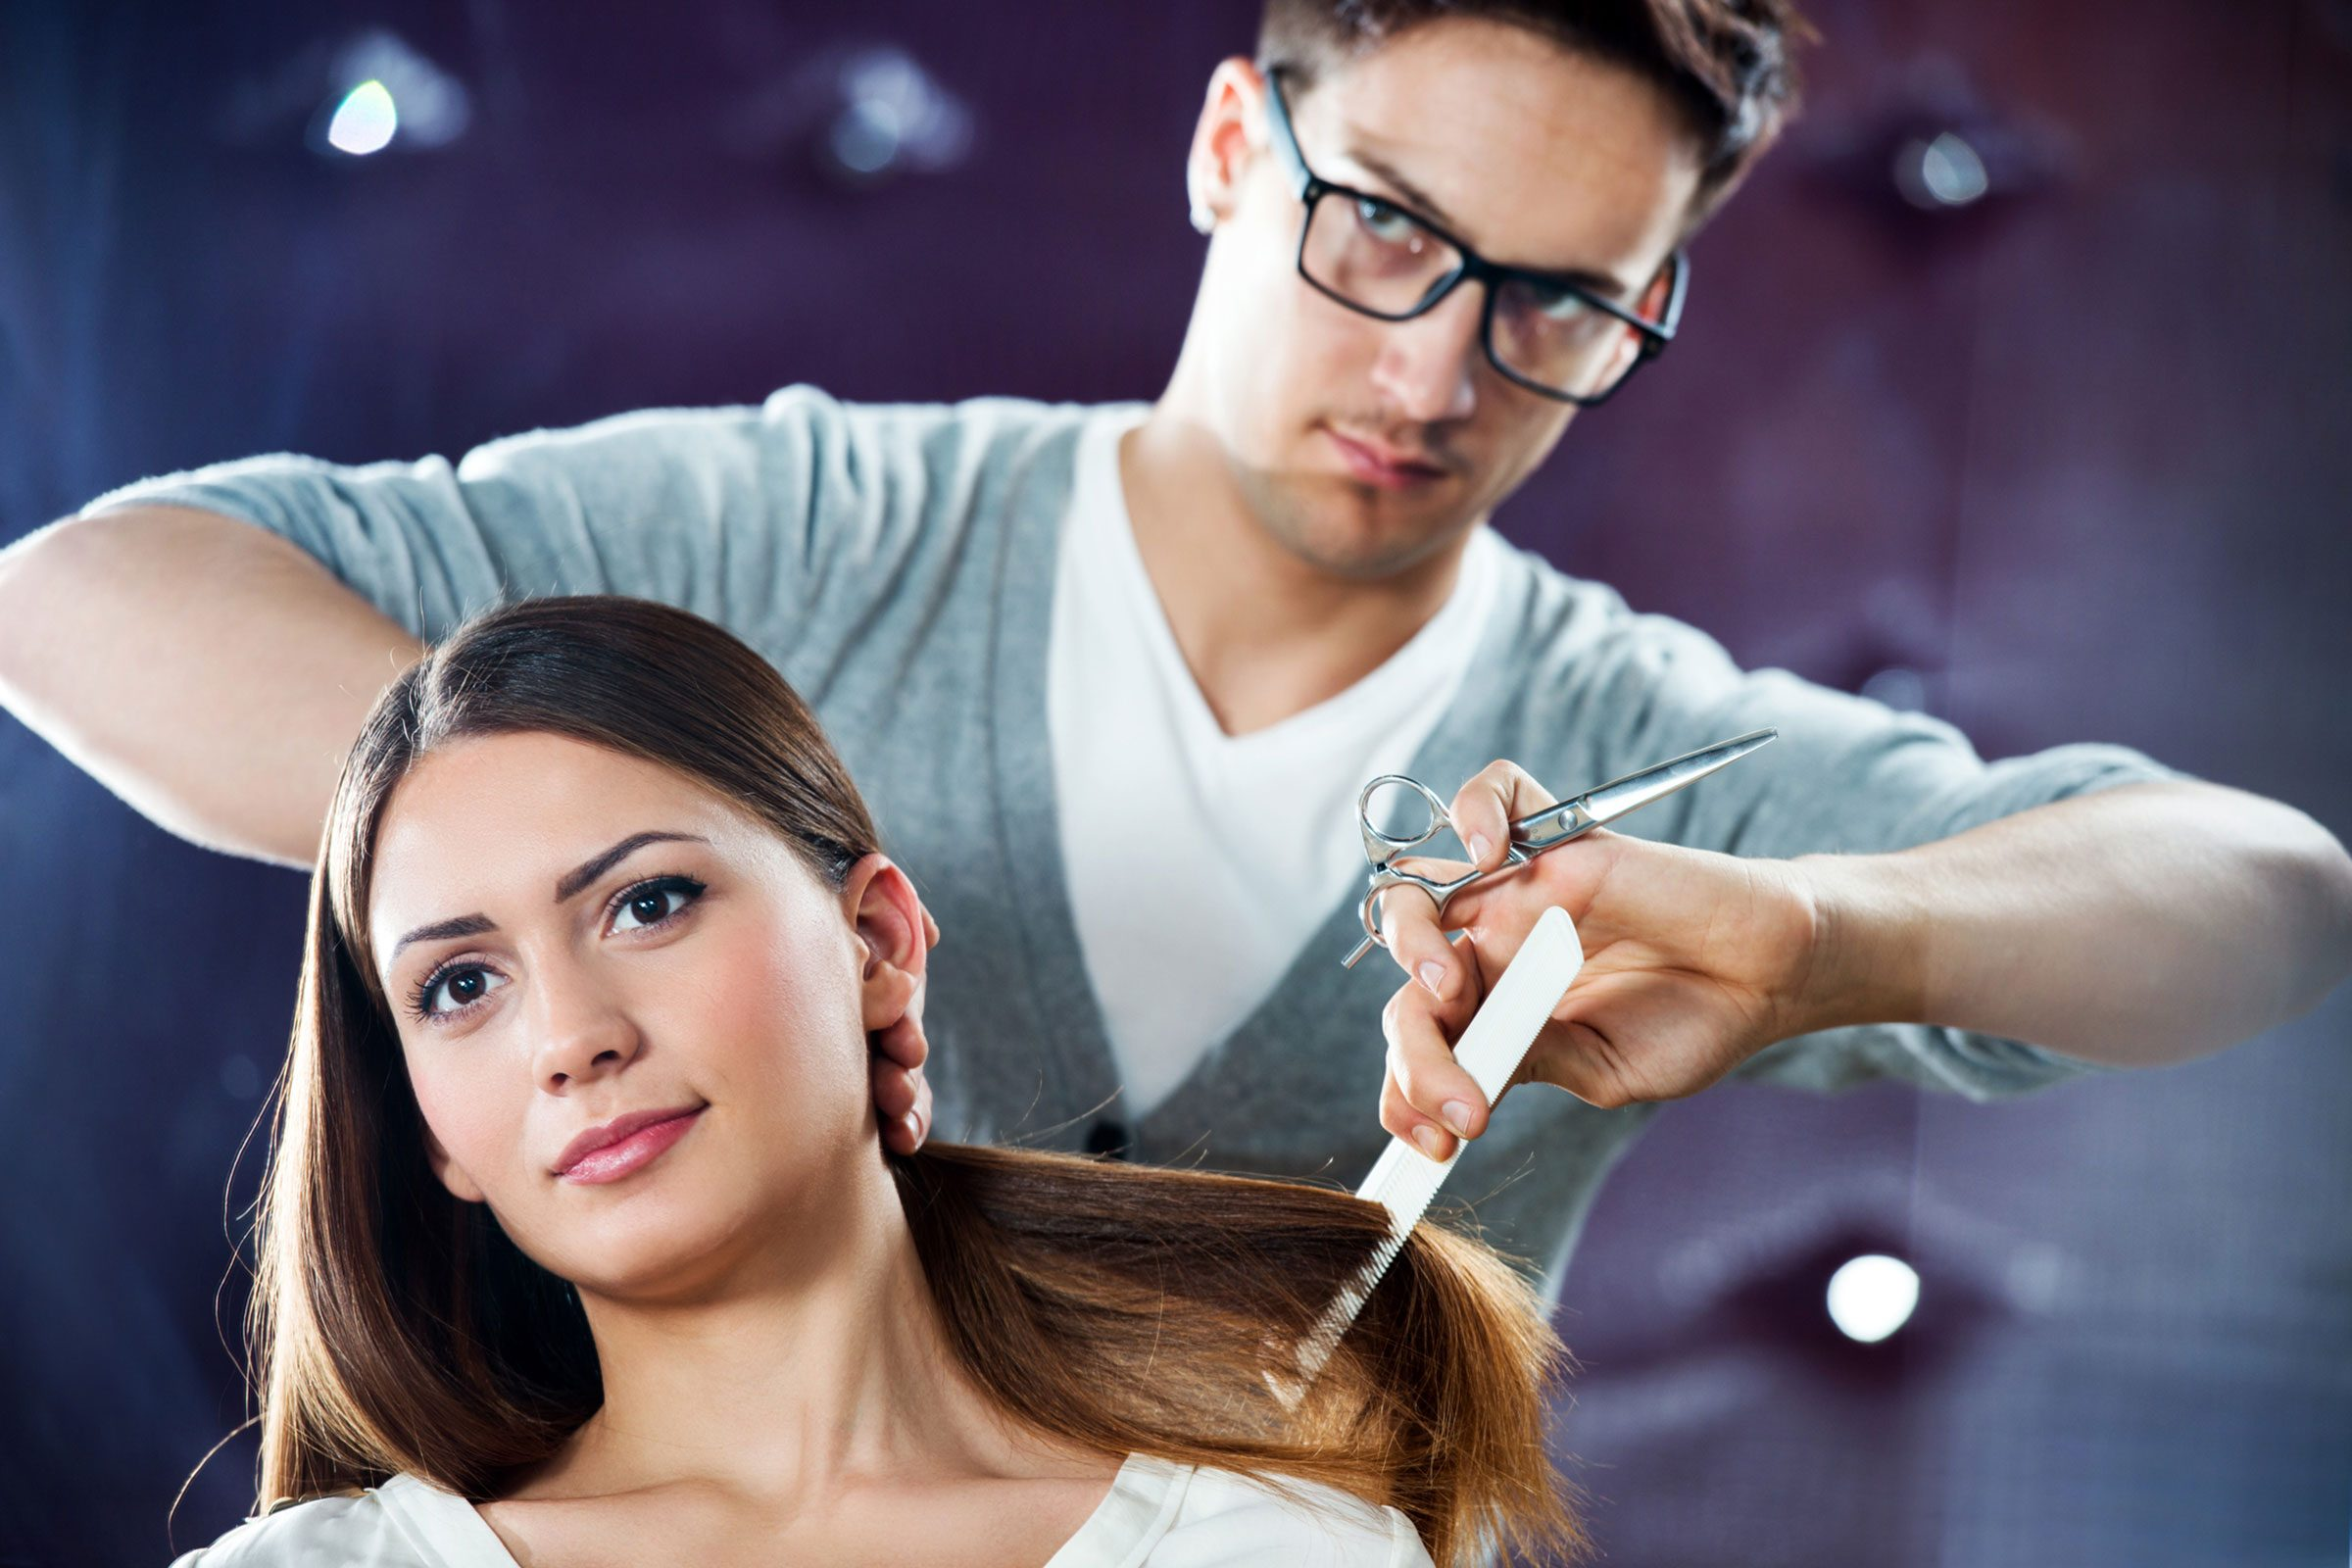 hairdressers - photo #18